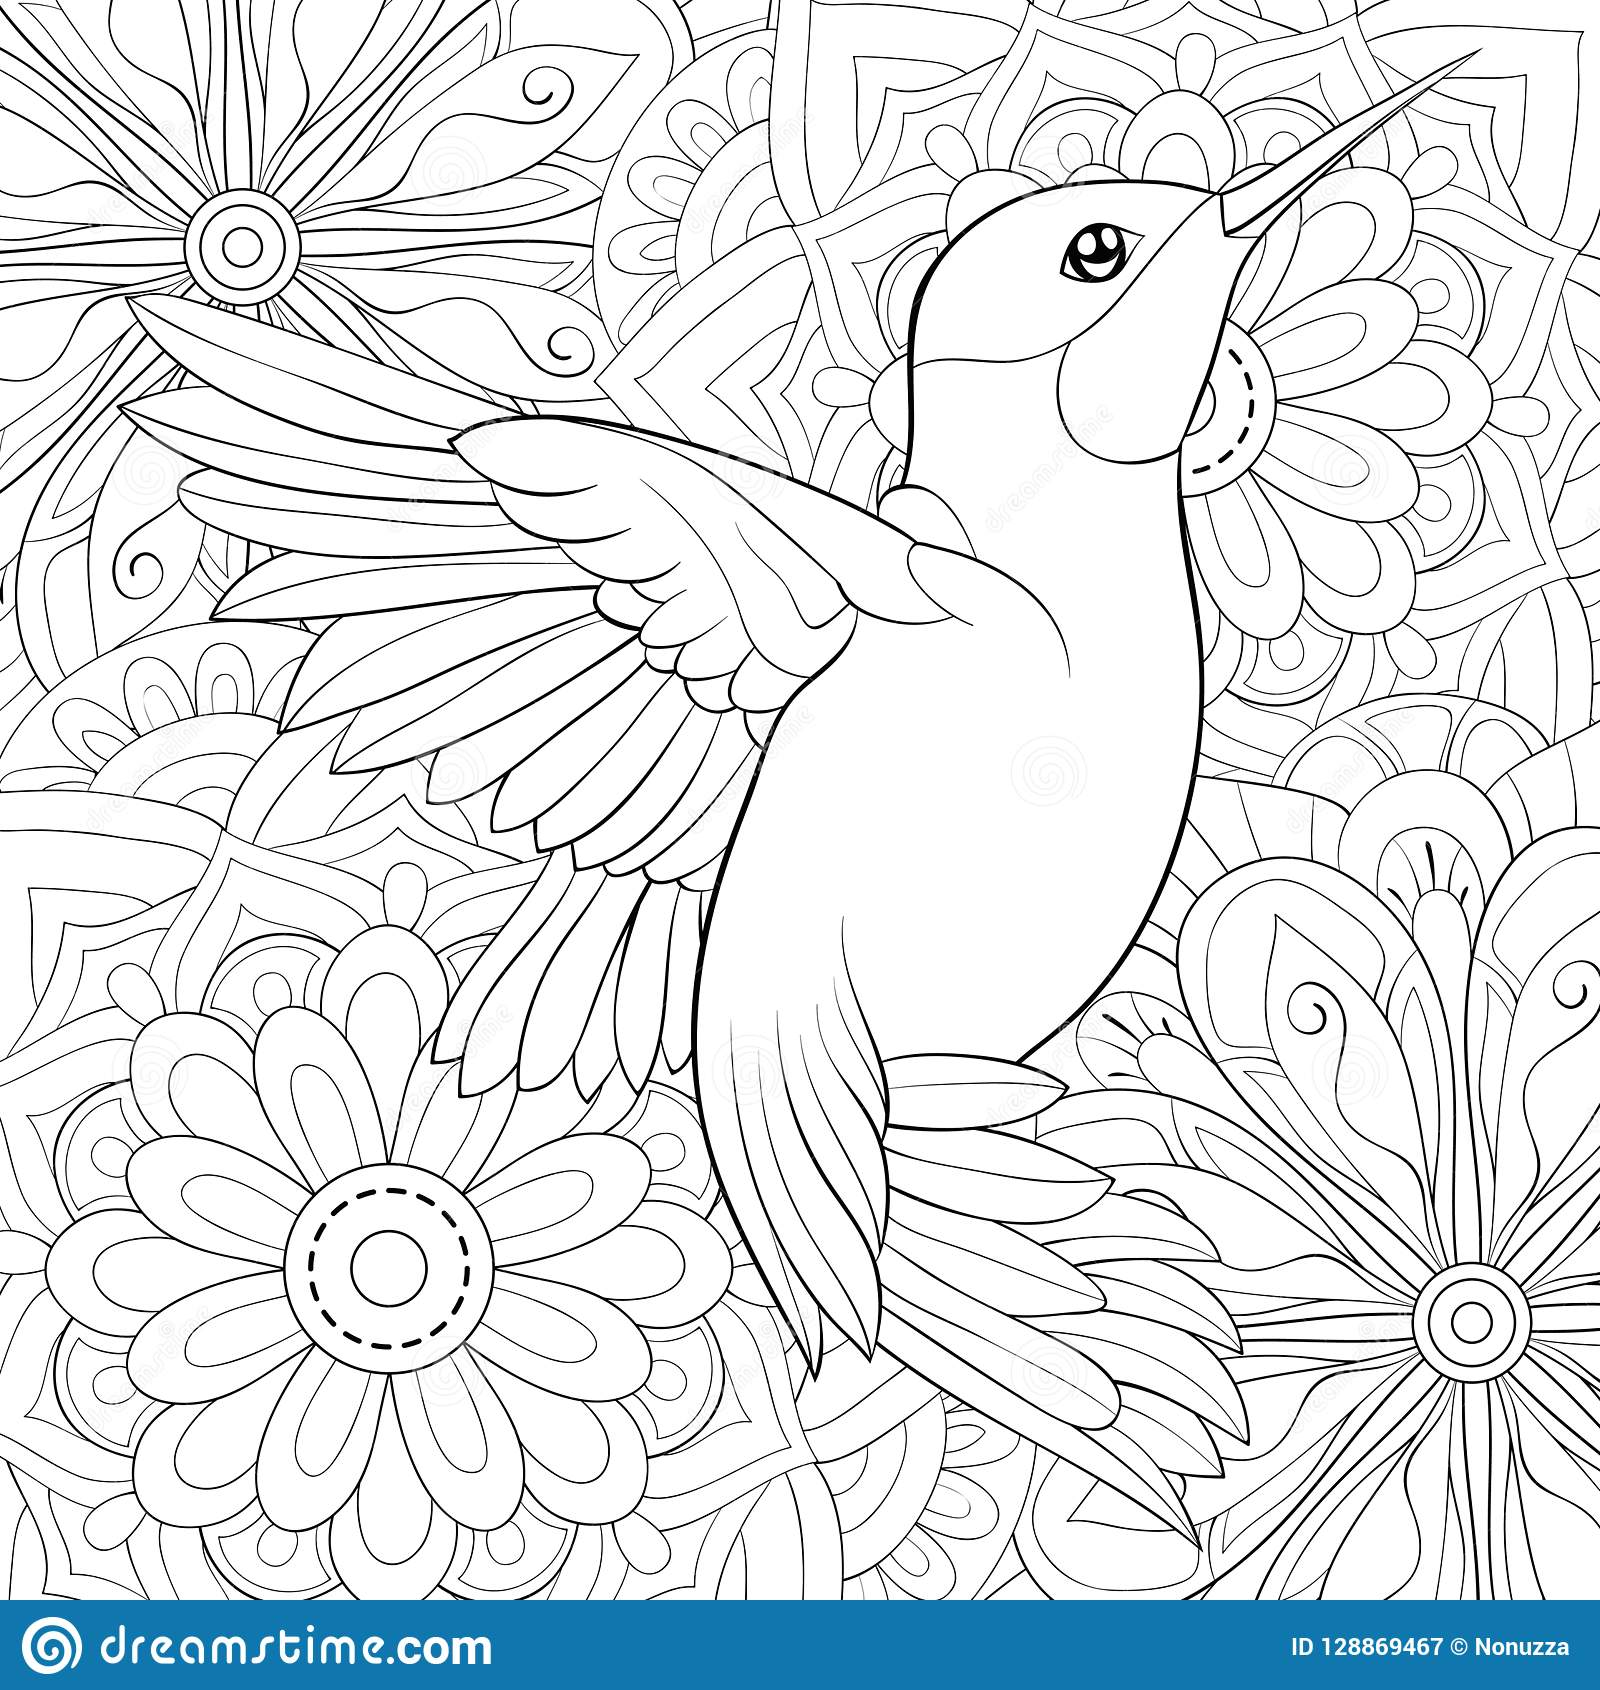 Adult Coloring Book Page A Cute Bird For Relaxing Zen Art Style Illustration Stock Vector Illustration Of Adults Brunch 128869467